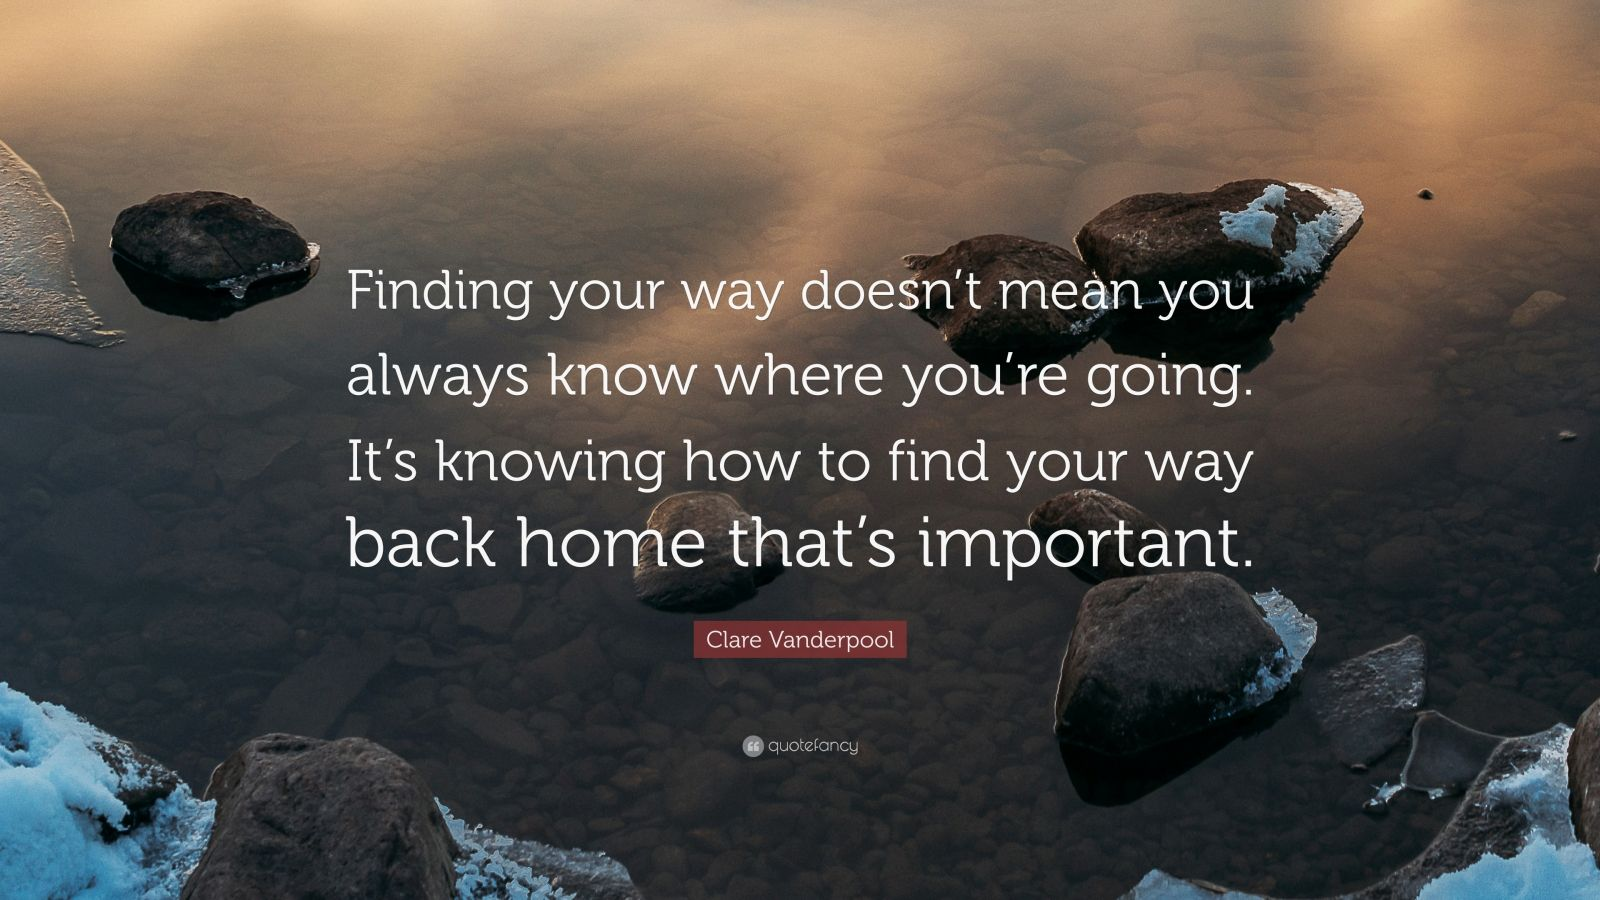 Quotes About Always Finding Your Way Home